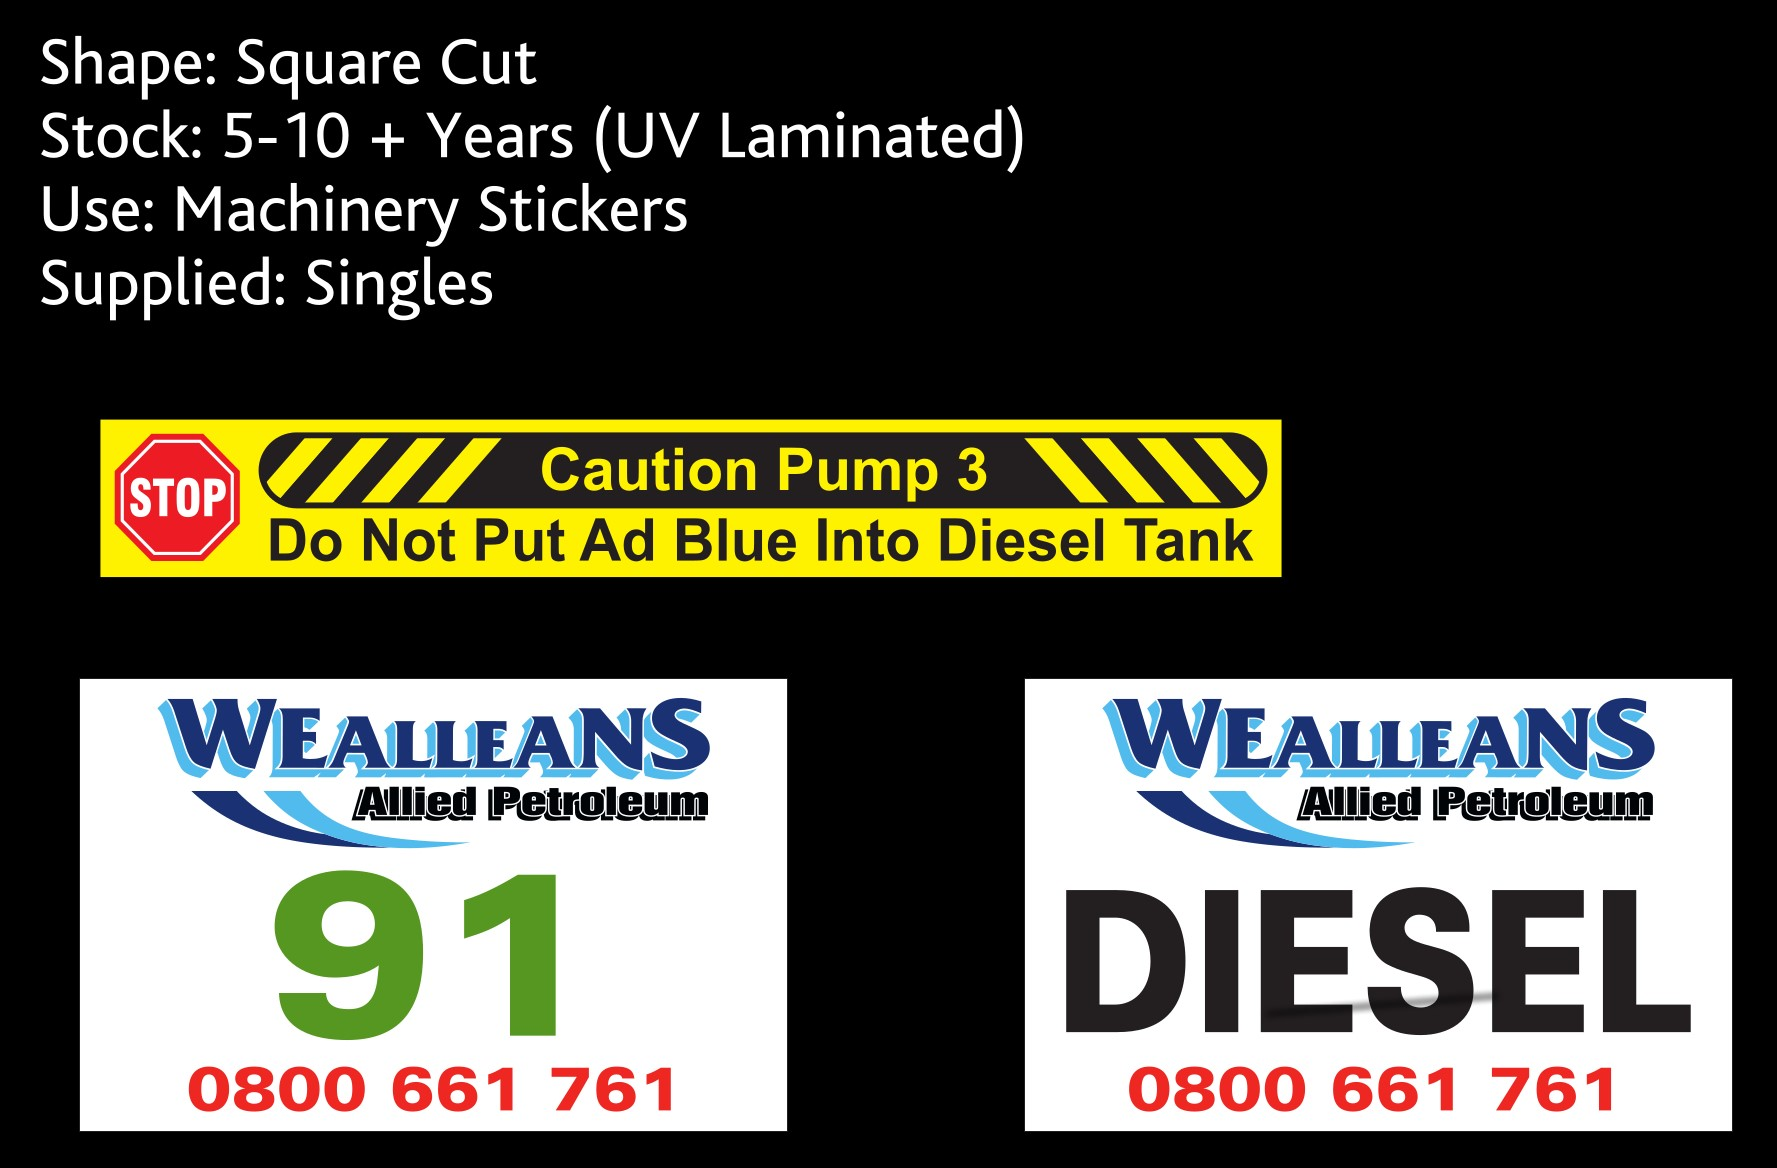 sticky stickers and wealleans - machinery stickers